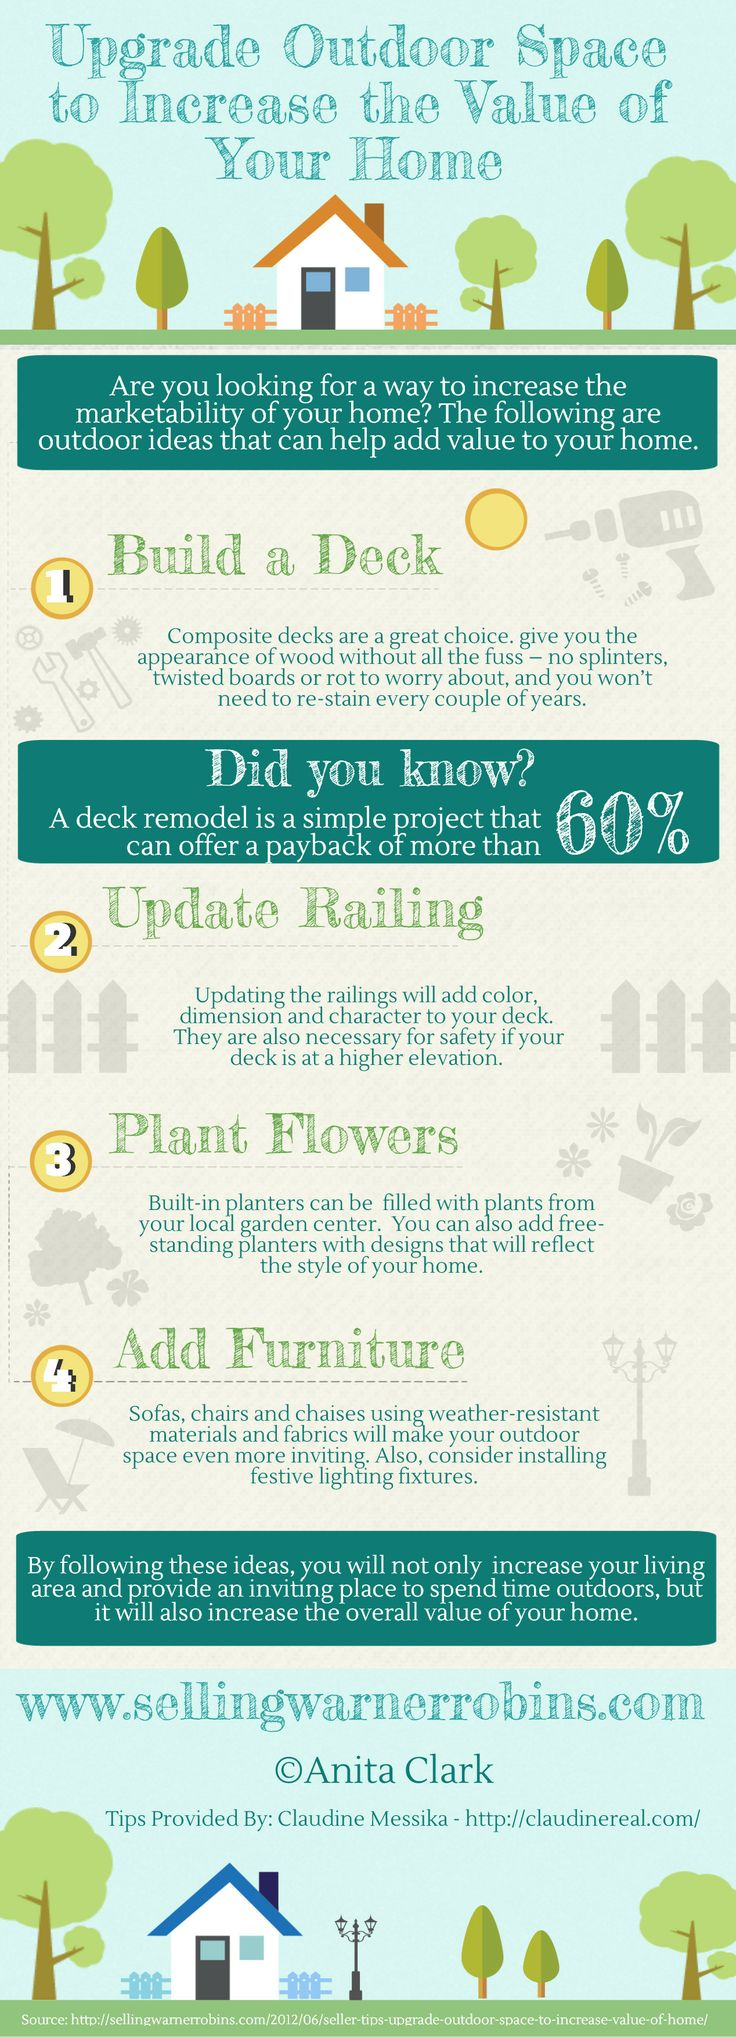 51 best Ideas on Increasing Property Value images on Pinterest ...